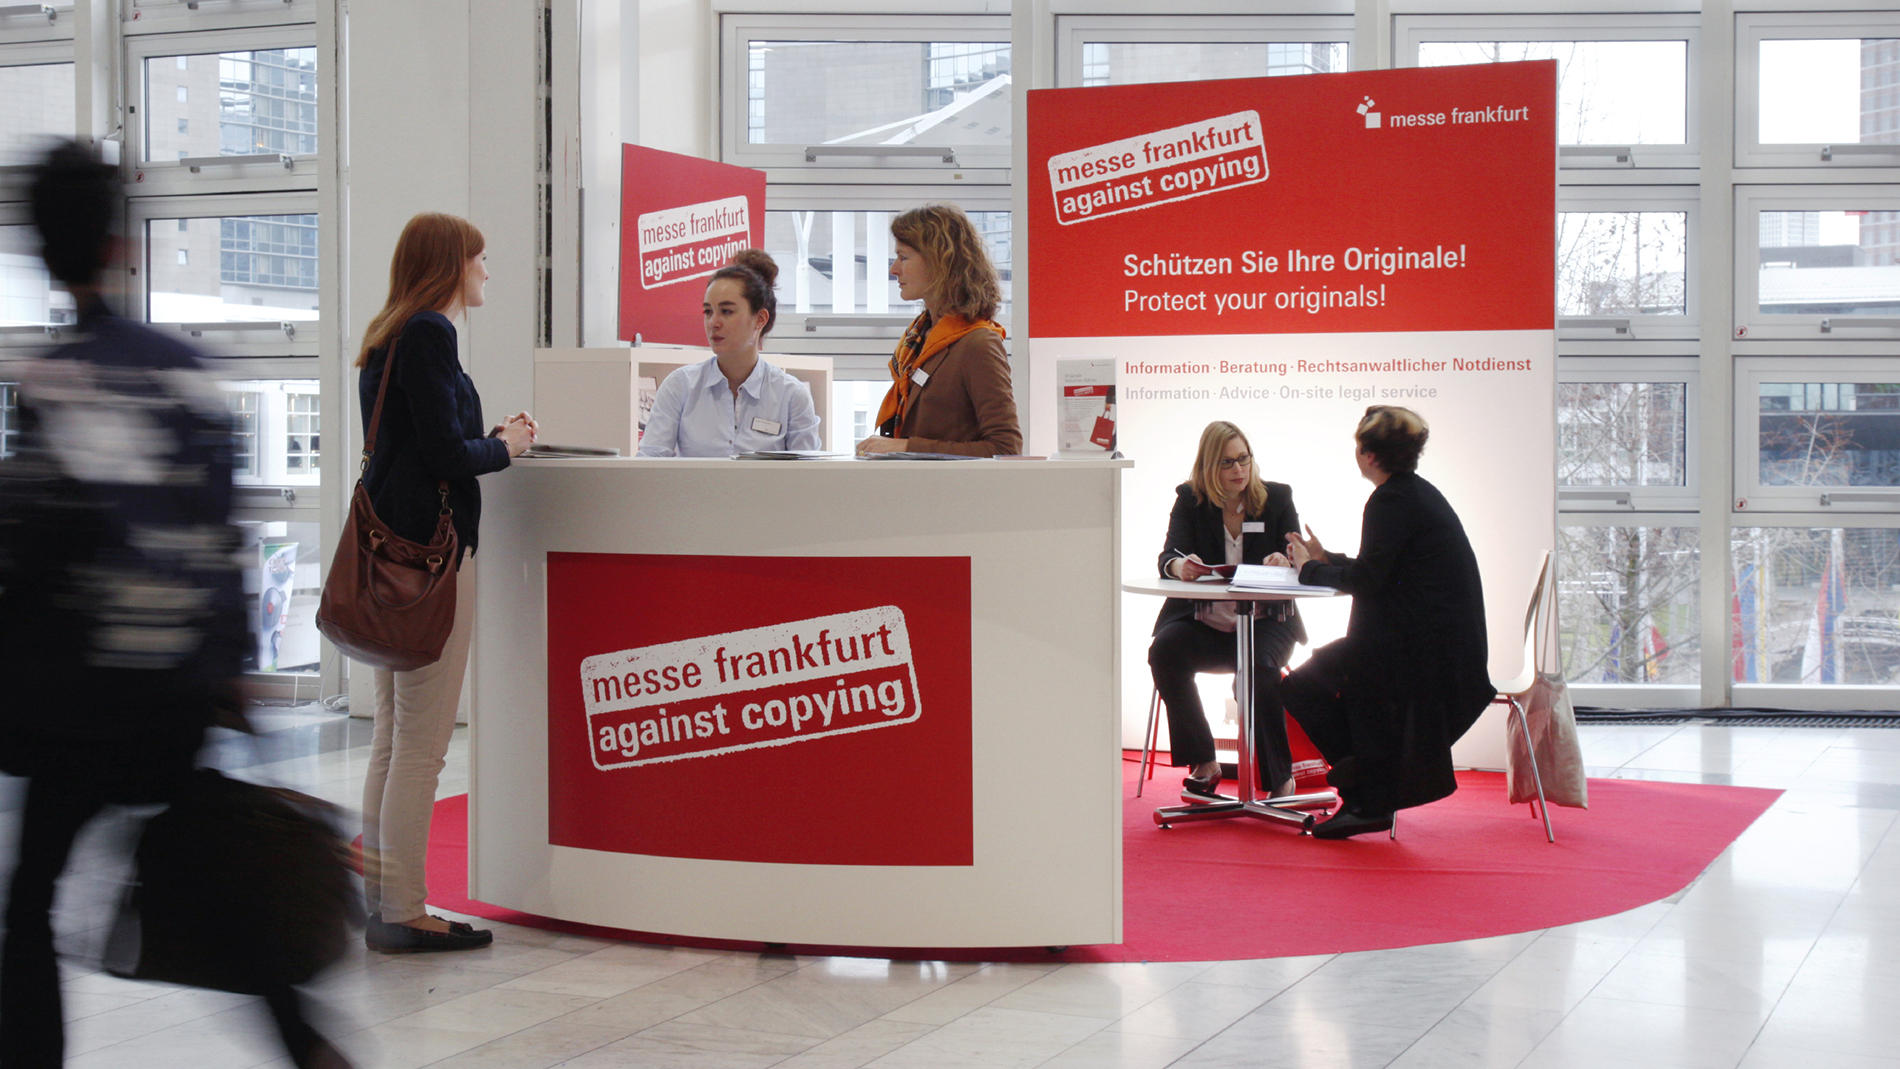 Messe Frankfurt against Copying